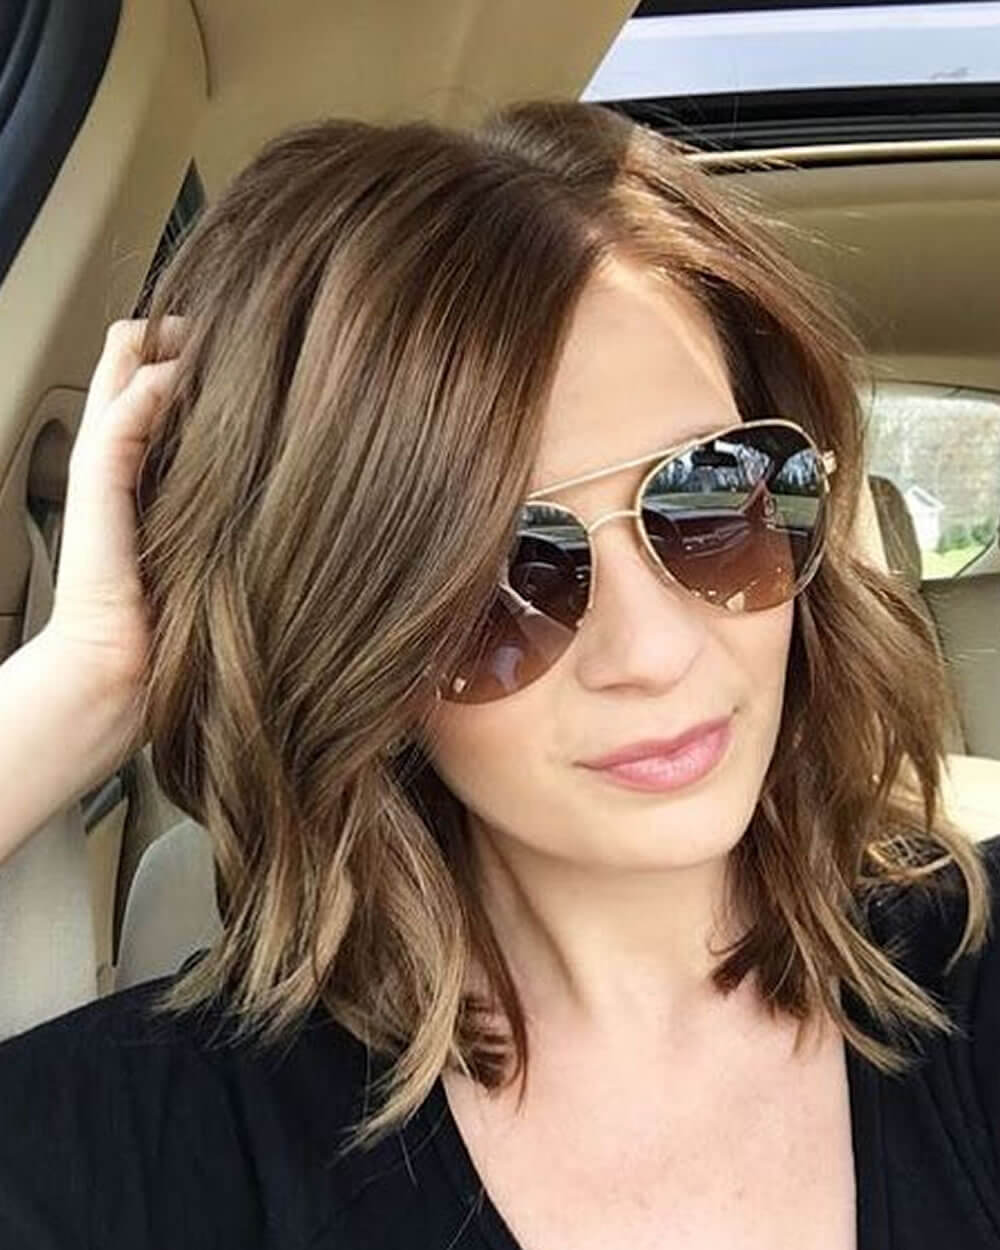 Asymmetrical long bob haircut 2020-2021 - Hair Colors